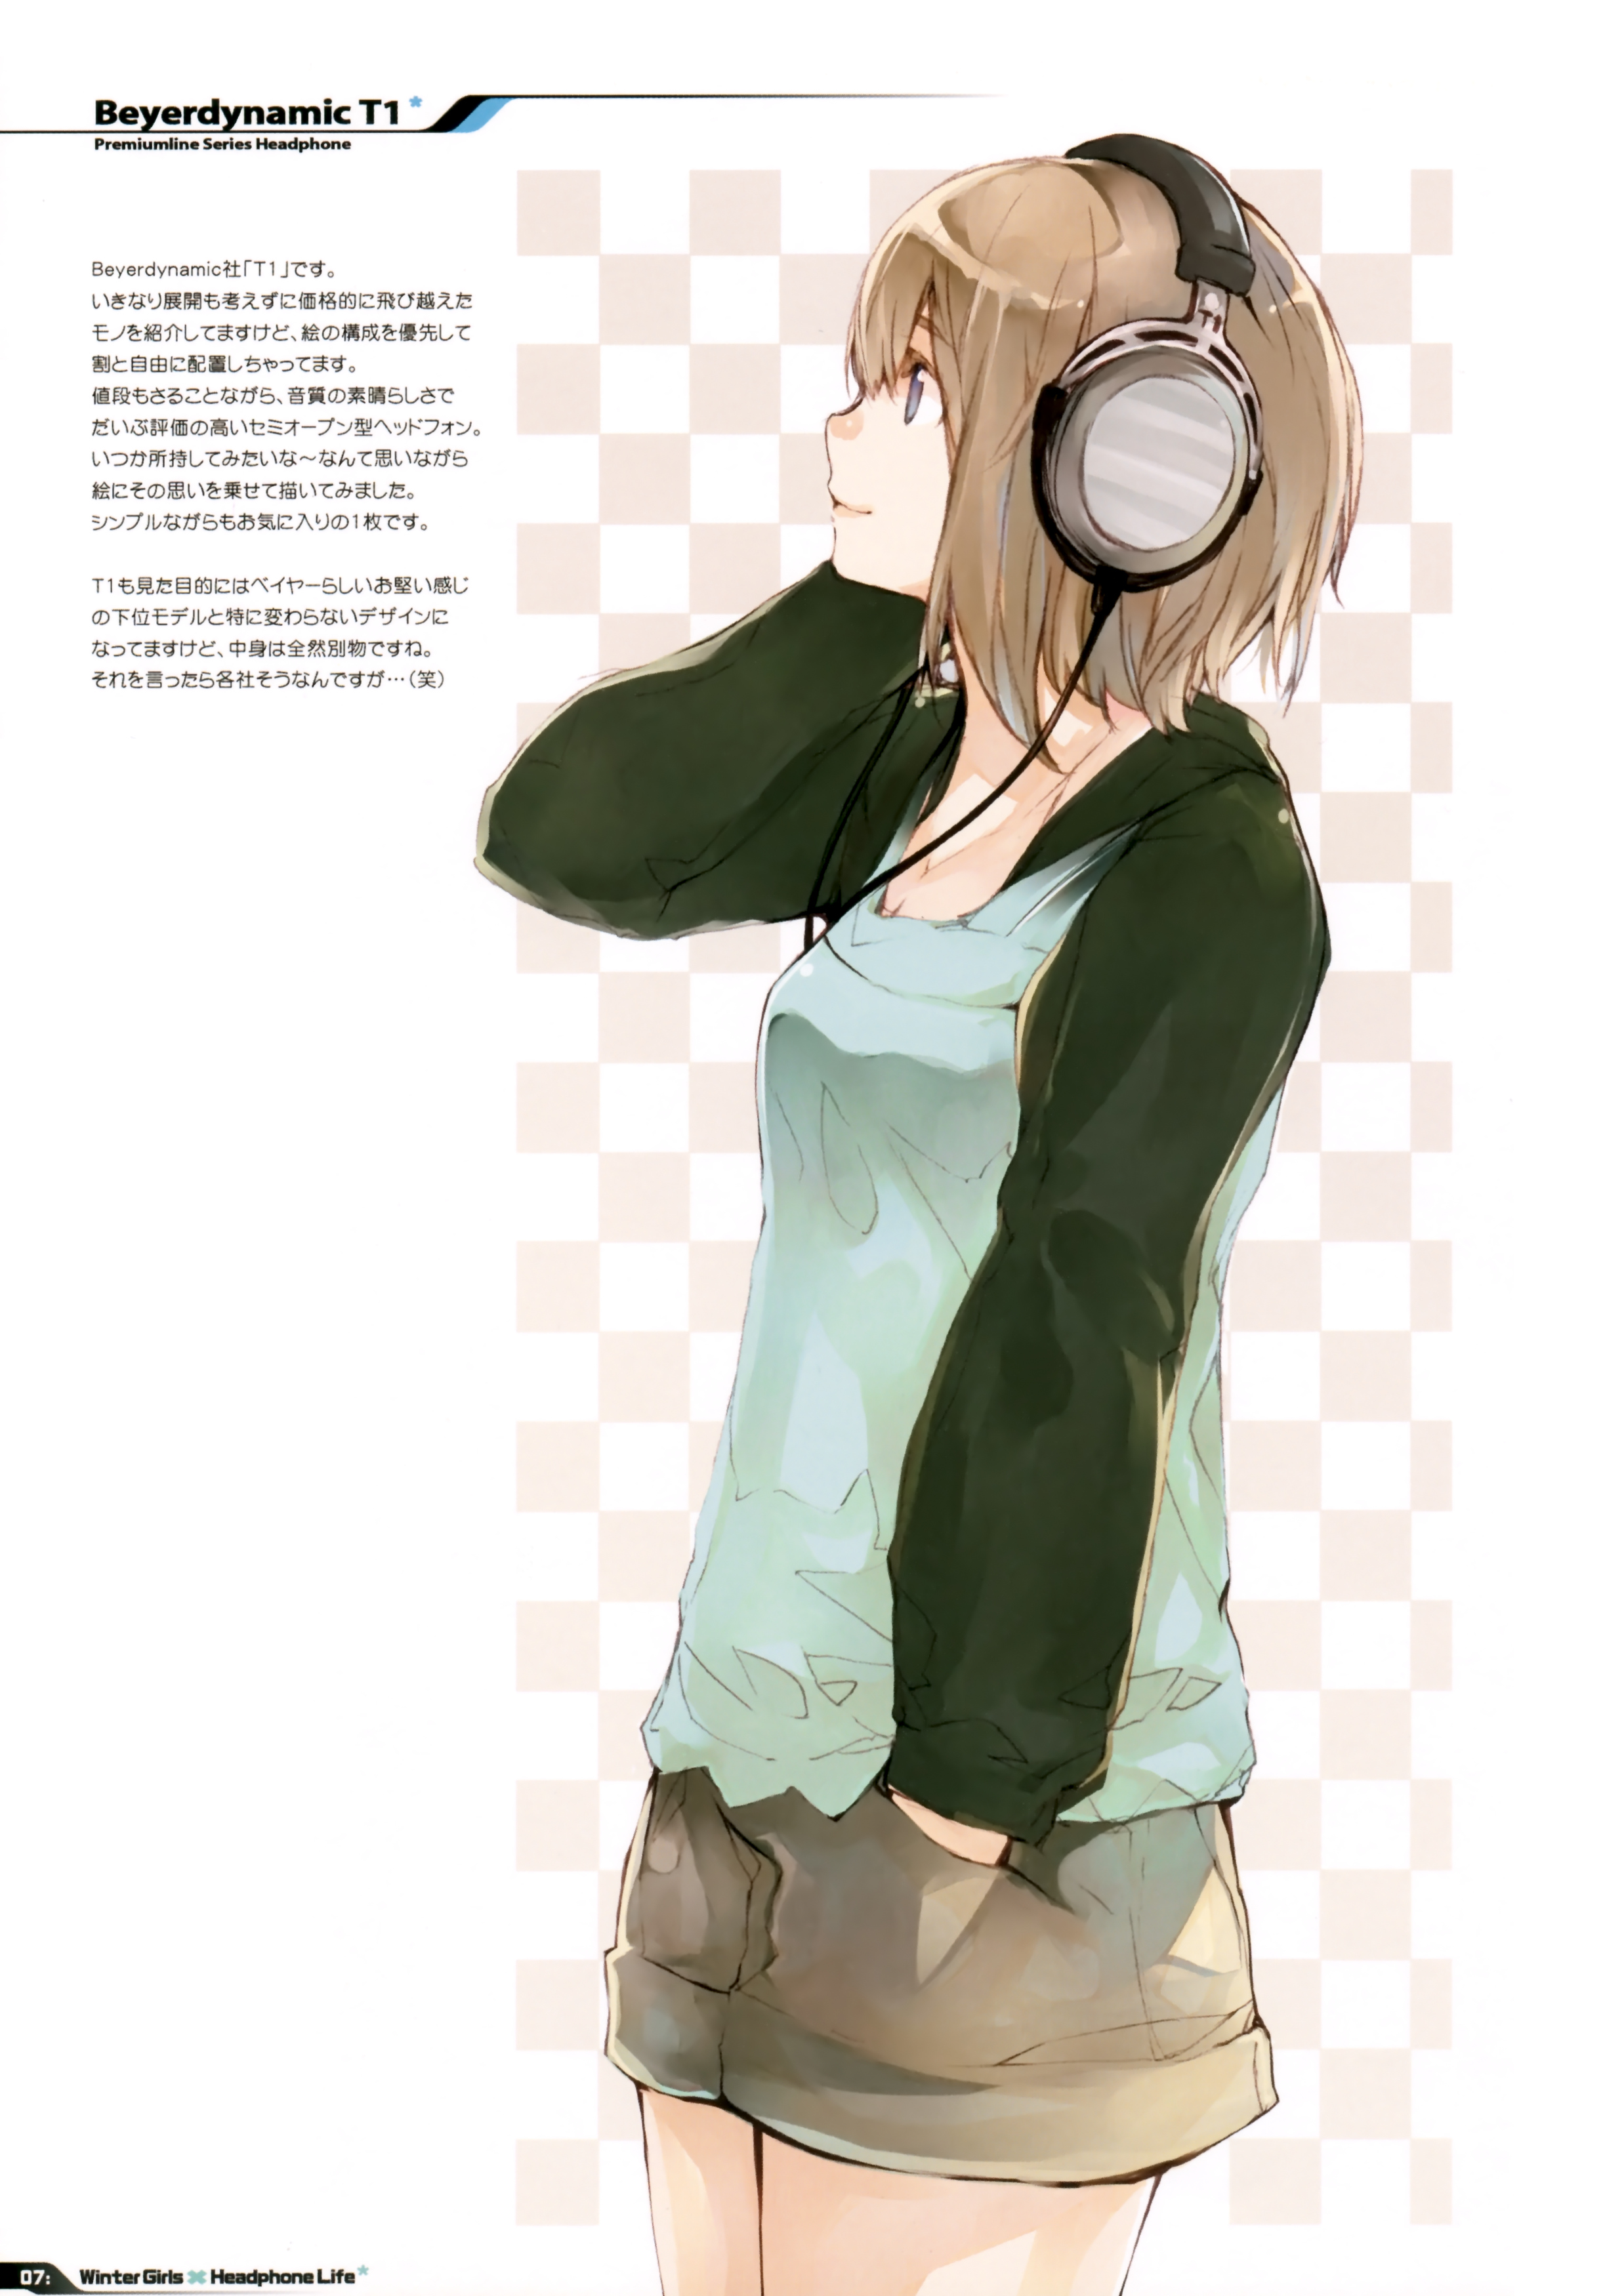 Brown Haired Anime Girl With Headphones Anime Girl With Headphones And